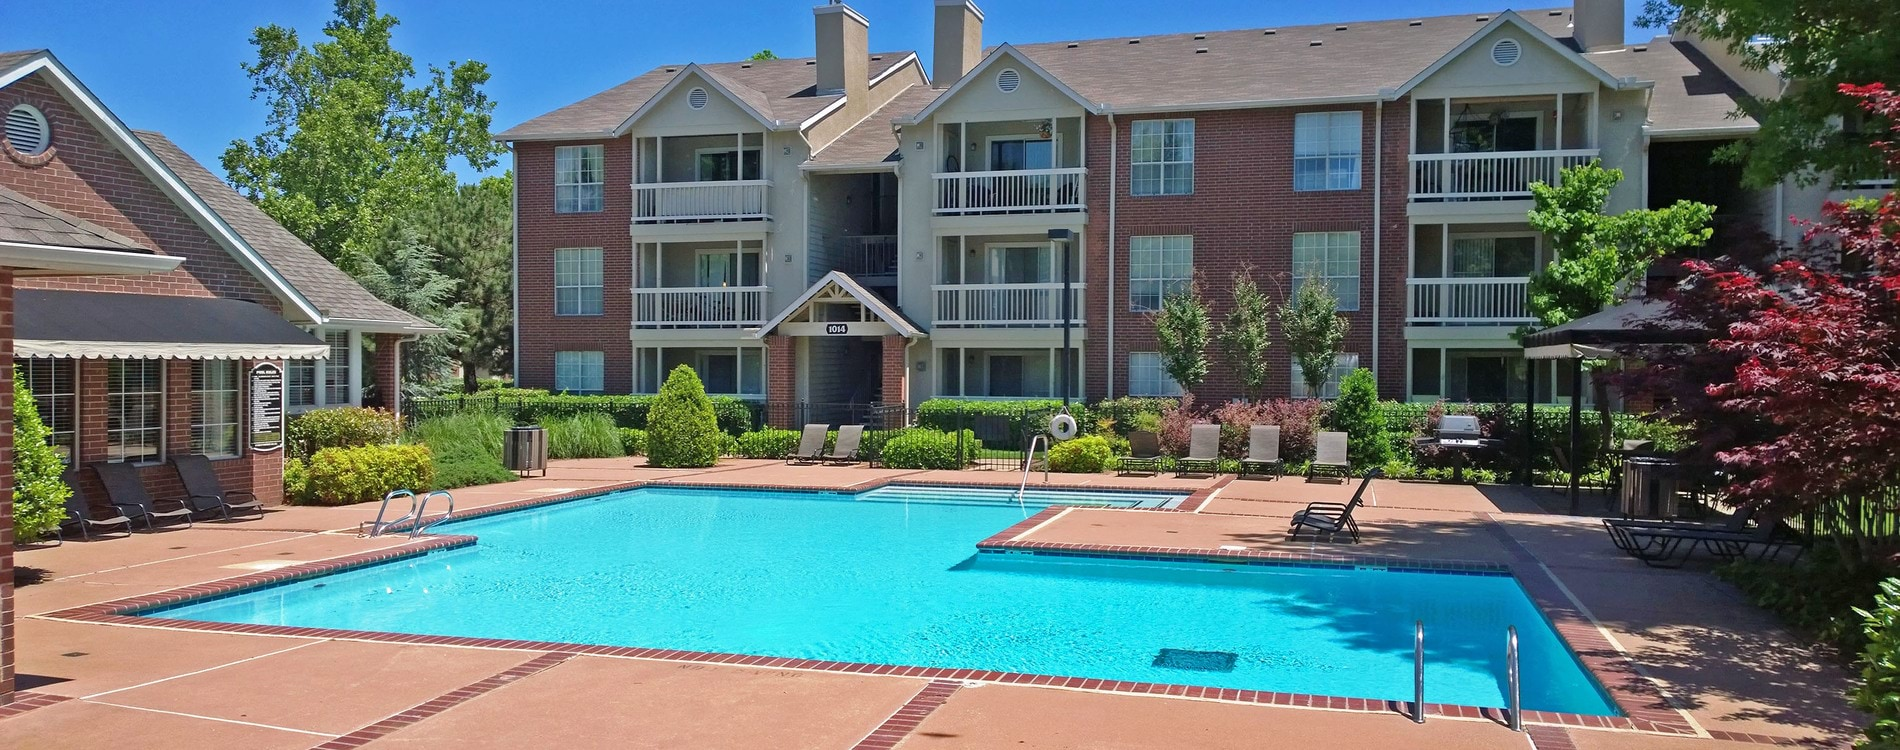 Apartments for Rent in Tulsa, OK | Wellsford Oaks Apartments - Home